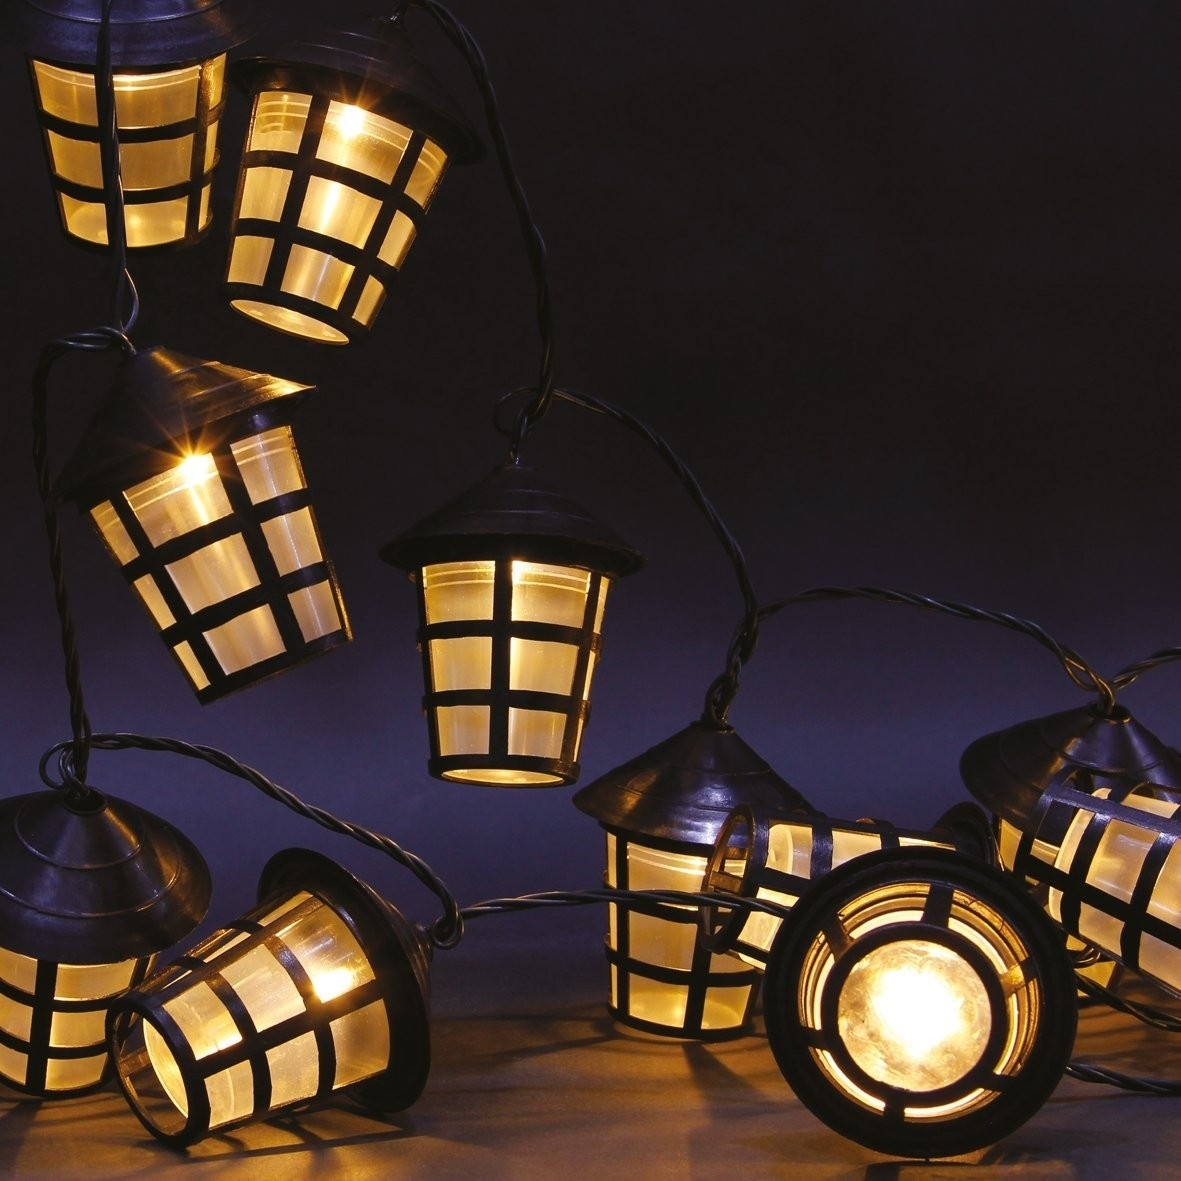 70 Warm White Led Garden Lantern String Lights | This Is It Stores Uk For Outdoor Lanterns On String (Photo 13 of 20)